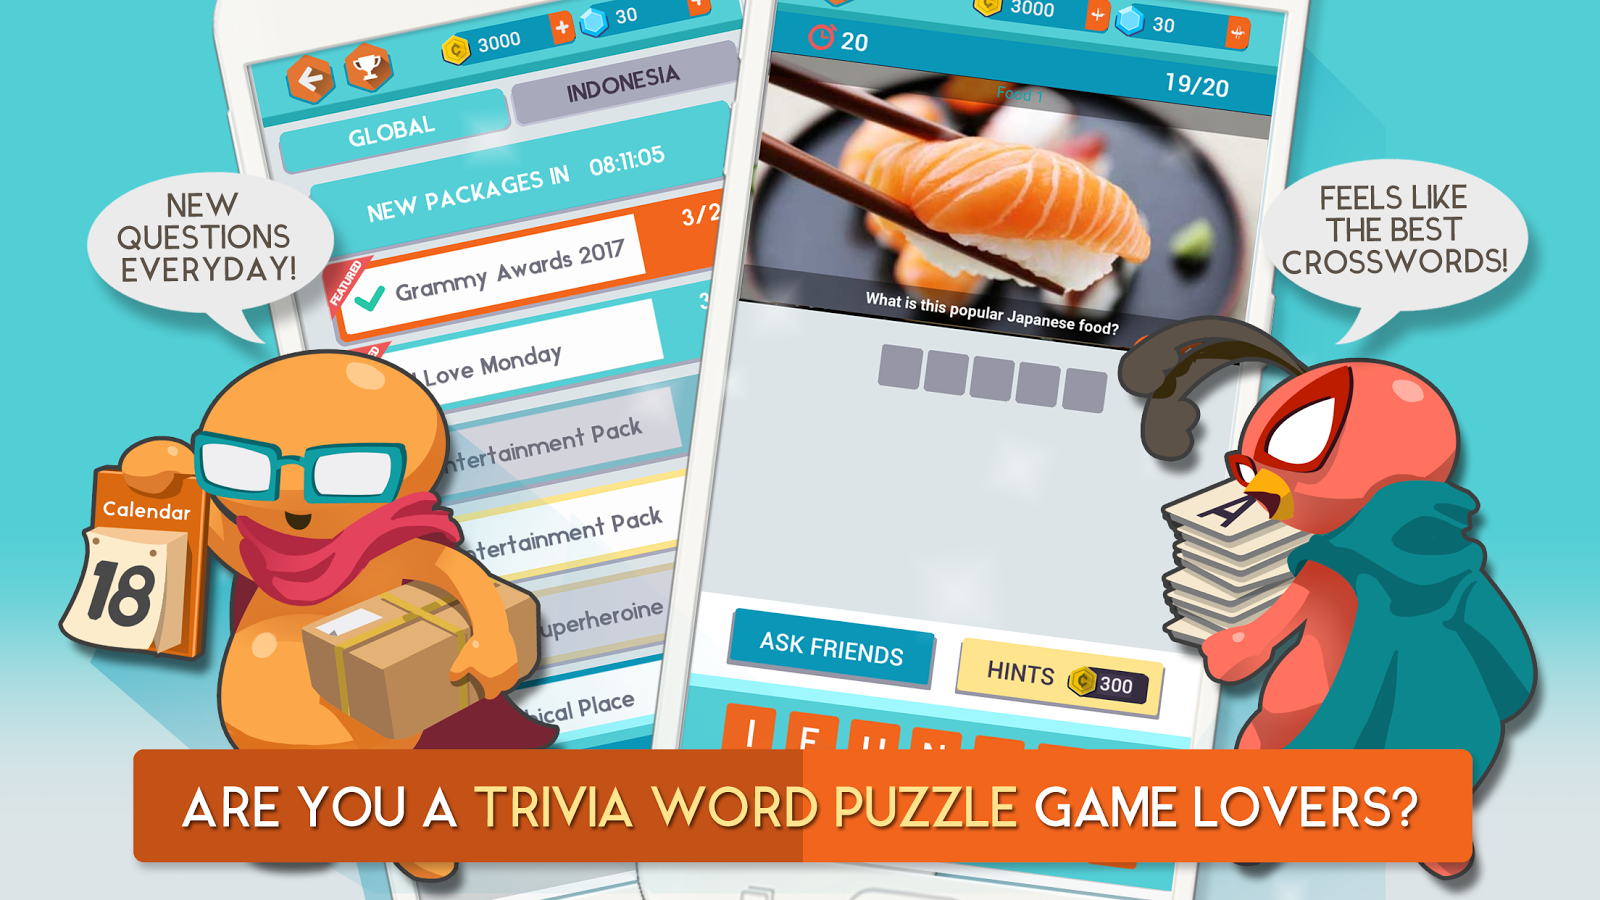 Daily Word Puzzles Superfan Android Apps On Google Play